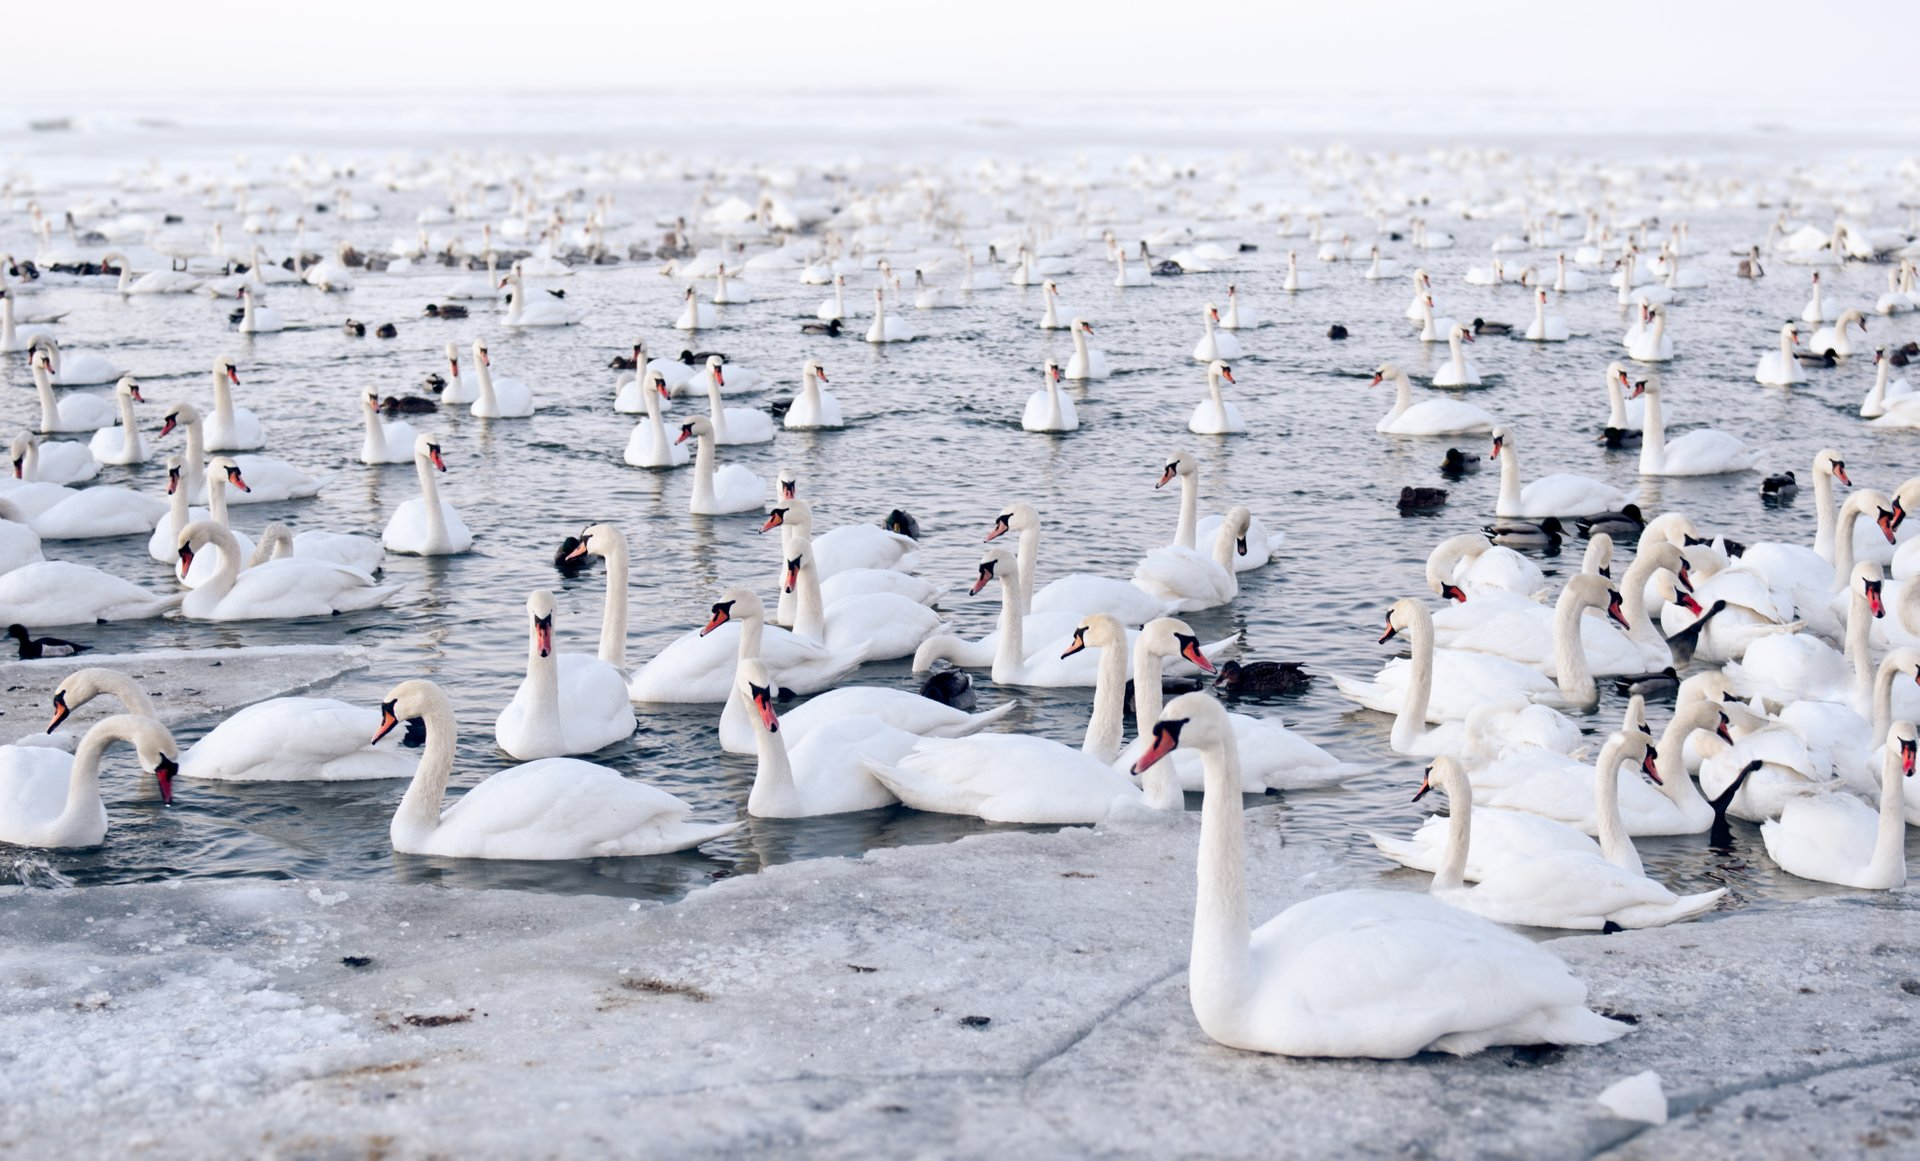 Birdwatching during Mass Bird Migration in Estonia 2020 - Best Time